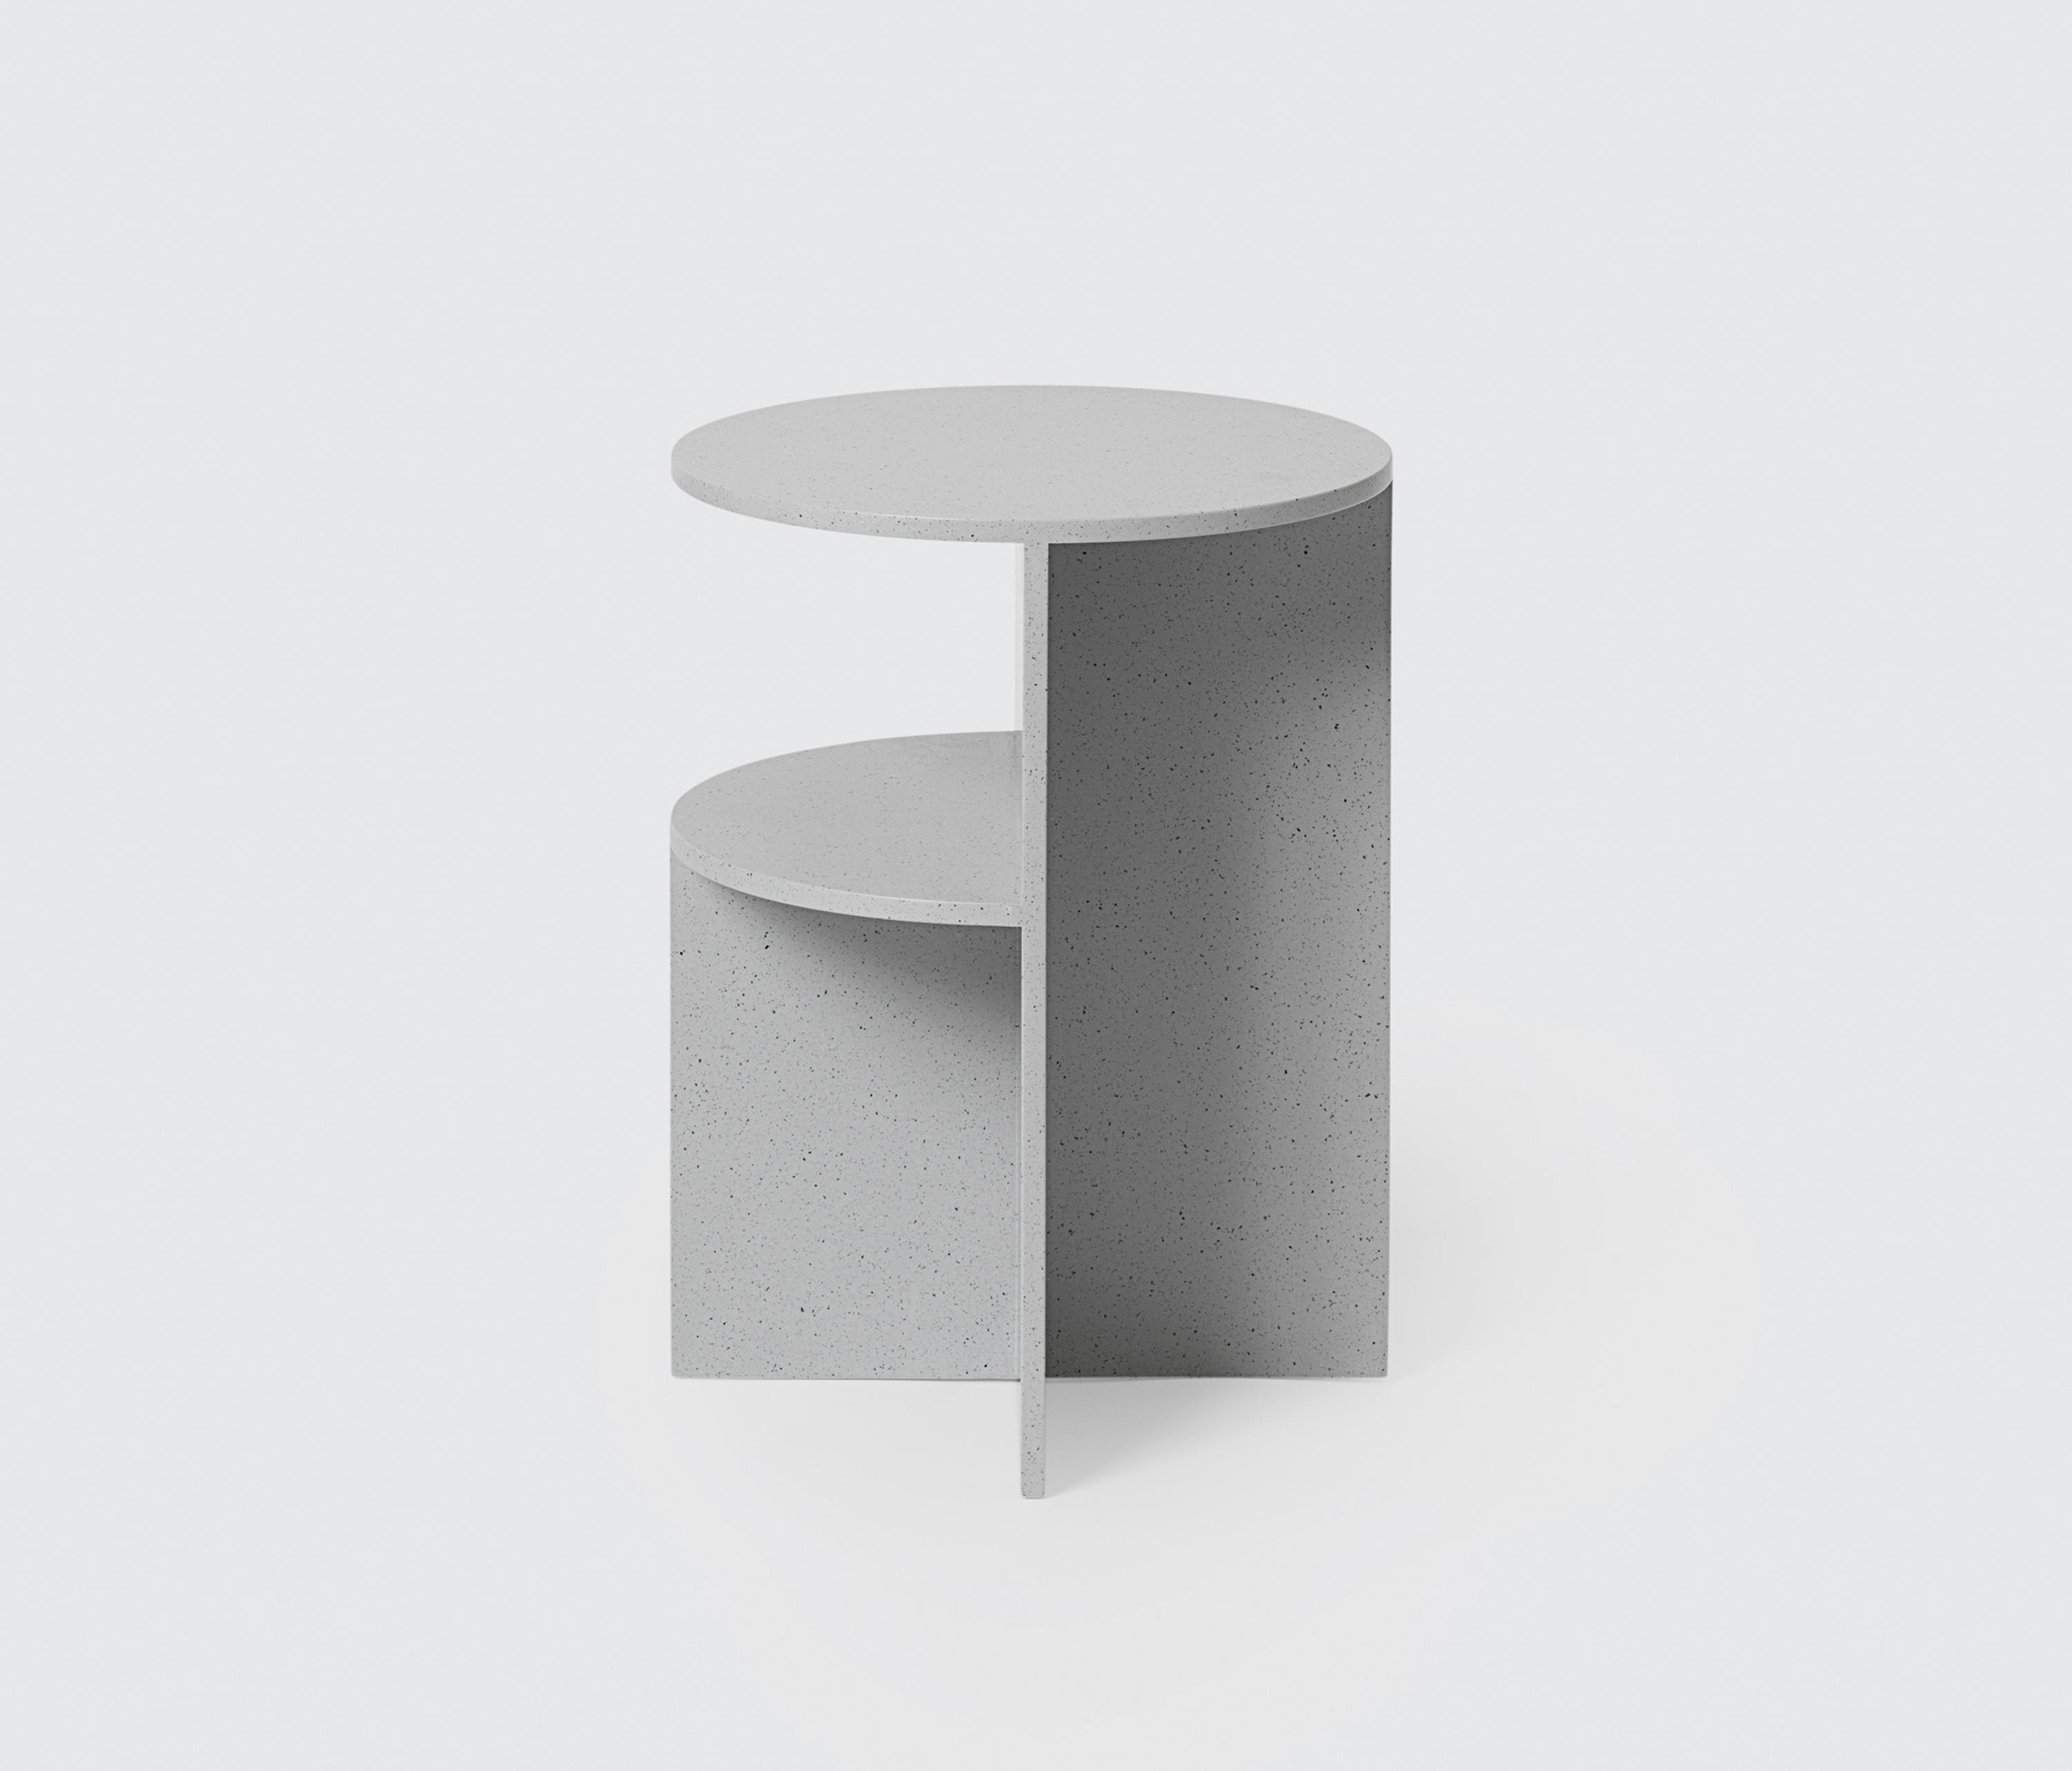 HALVES SIDE TABLE Side tables from Muuto